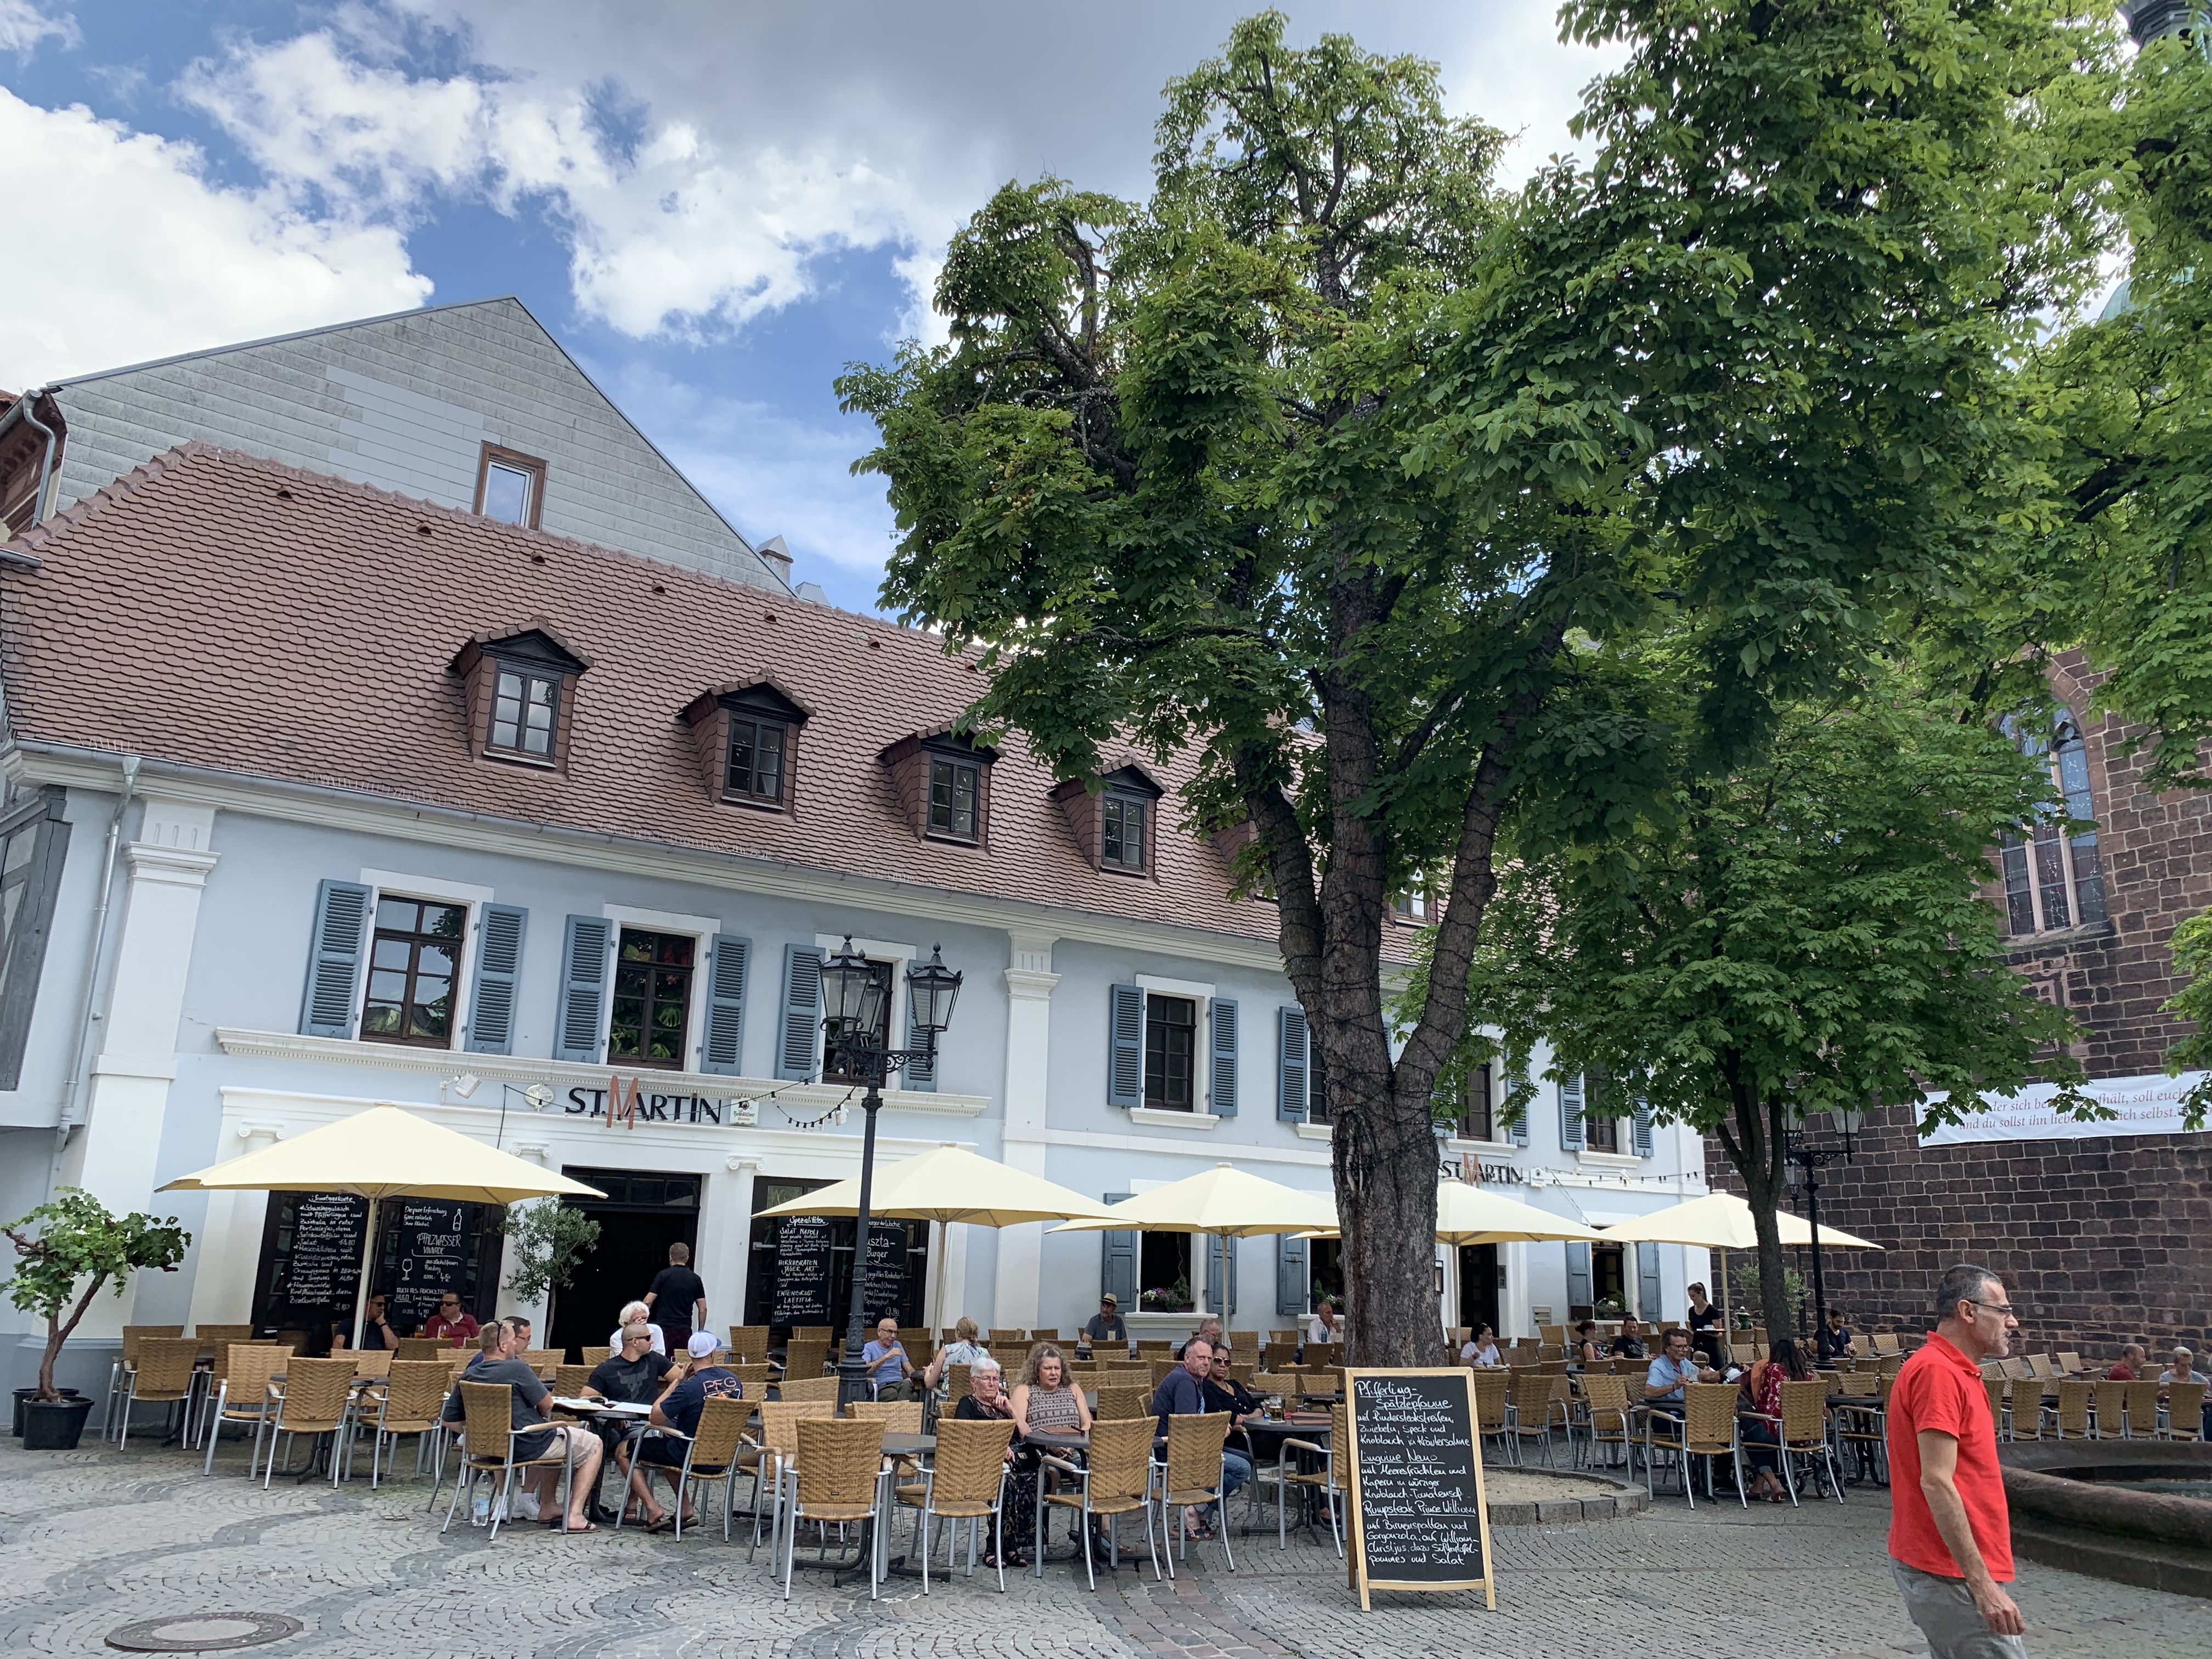 St. Martin square has a cute outdoor restaurant